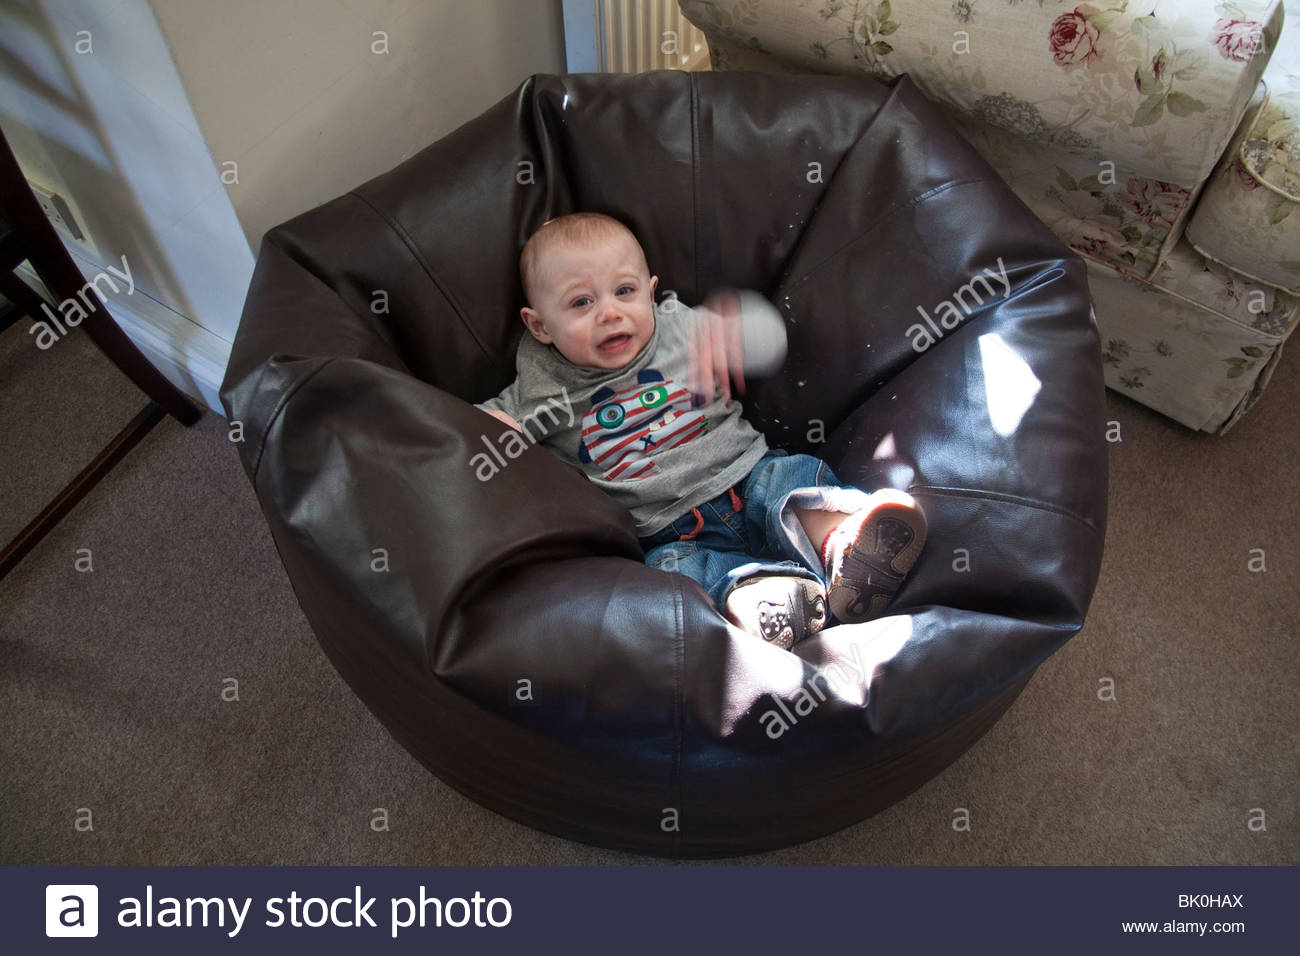 baby boy (11 months old)playing on a large leather cushion. - Stock Image